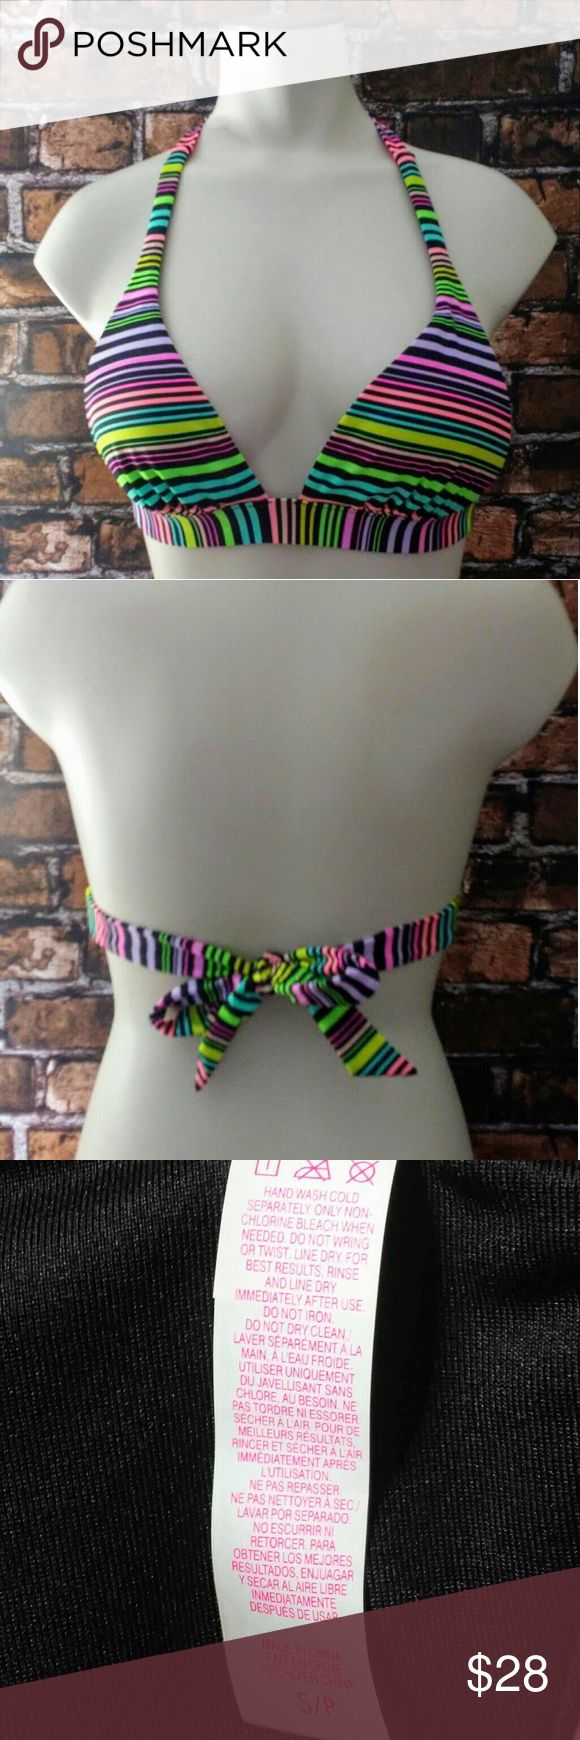 Victoria's Secret Bikini Top Multi Color This VS bikini top has multi colored stripes with removable padding. Ties in back and at neck. This item is a VS return or overstock that has the VS label cut out to prevent store returns. Victoria's Secret Swim Bikinis